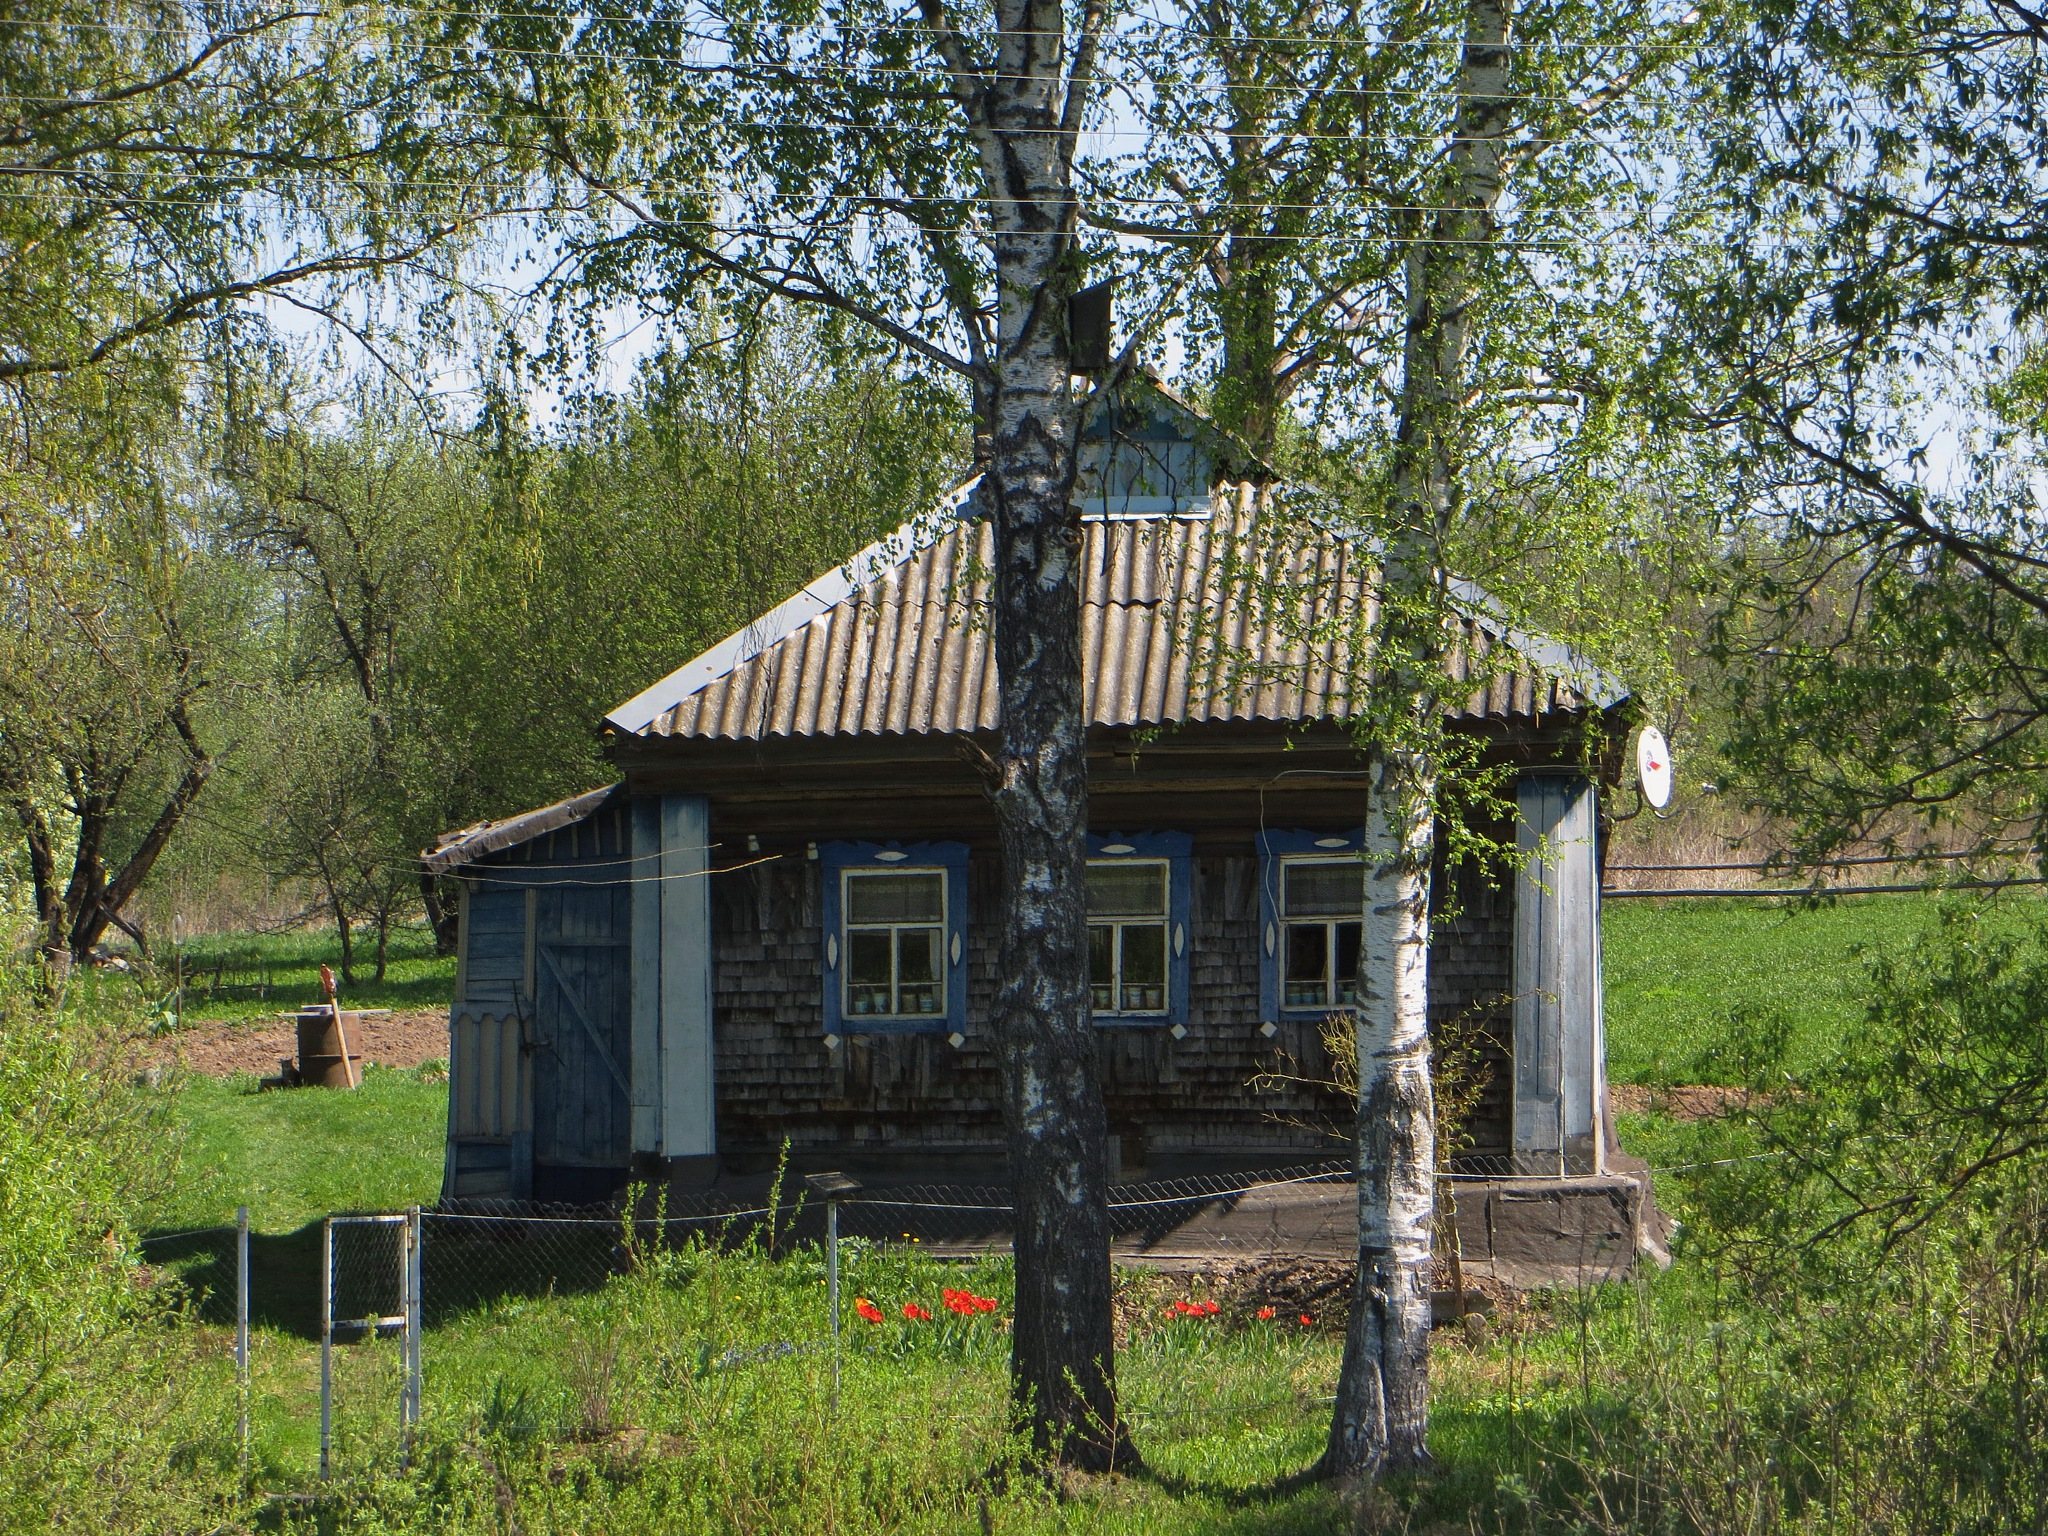 Russian ordinar rural house by Yurkoff Wladimir